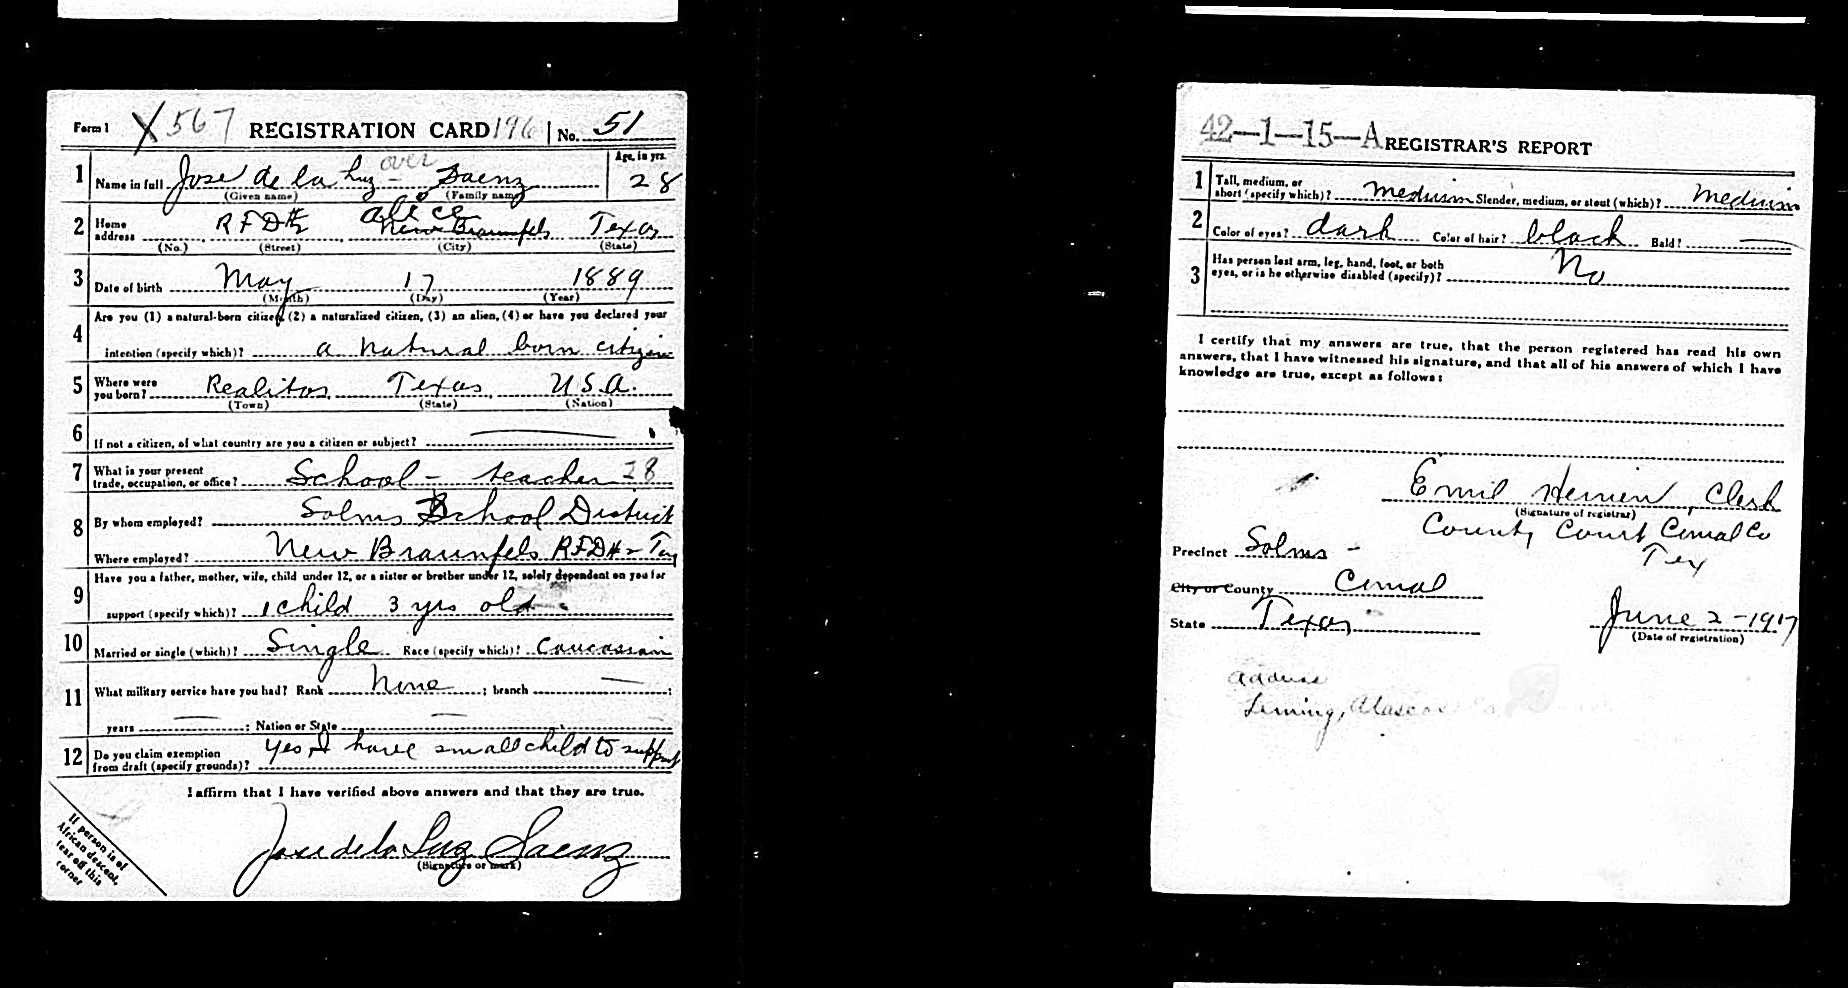 draft registration card of Jose de la Luz Saenz